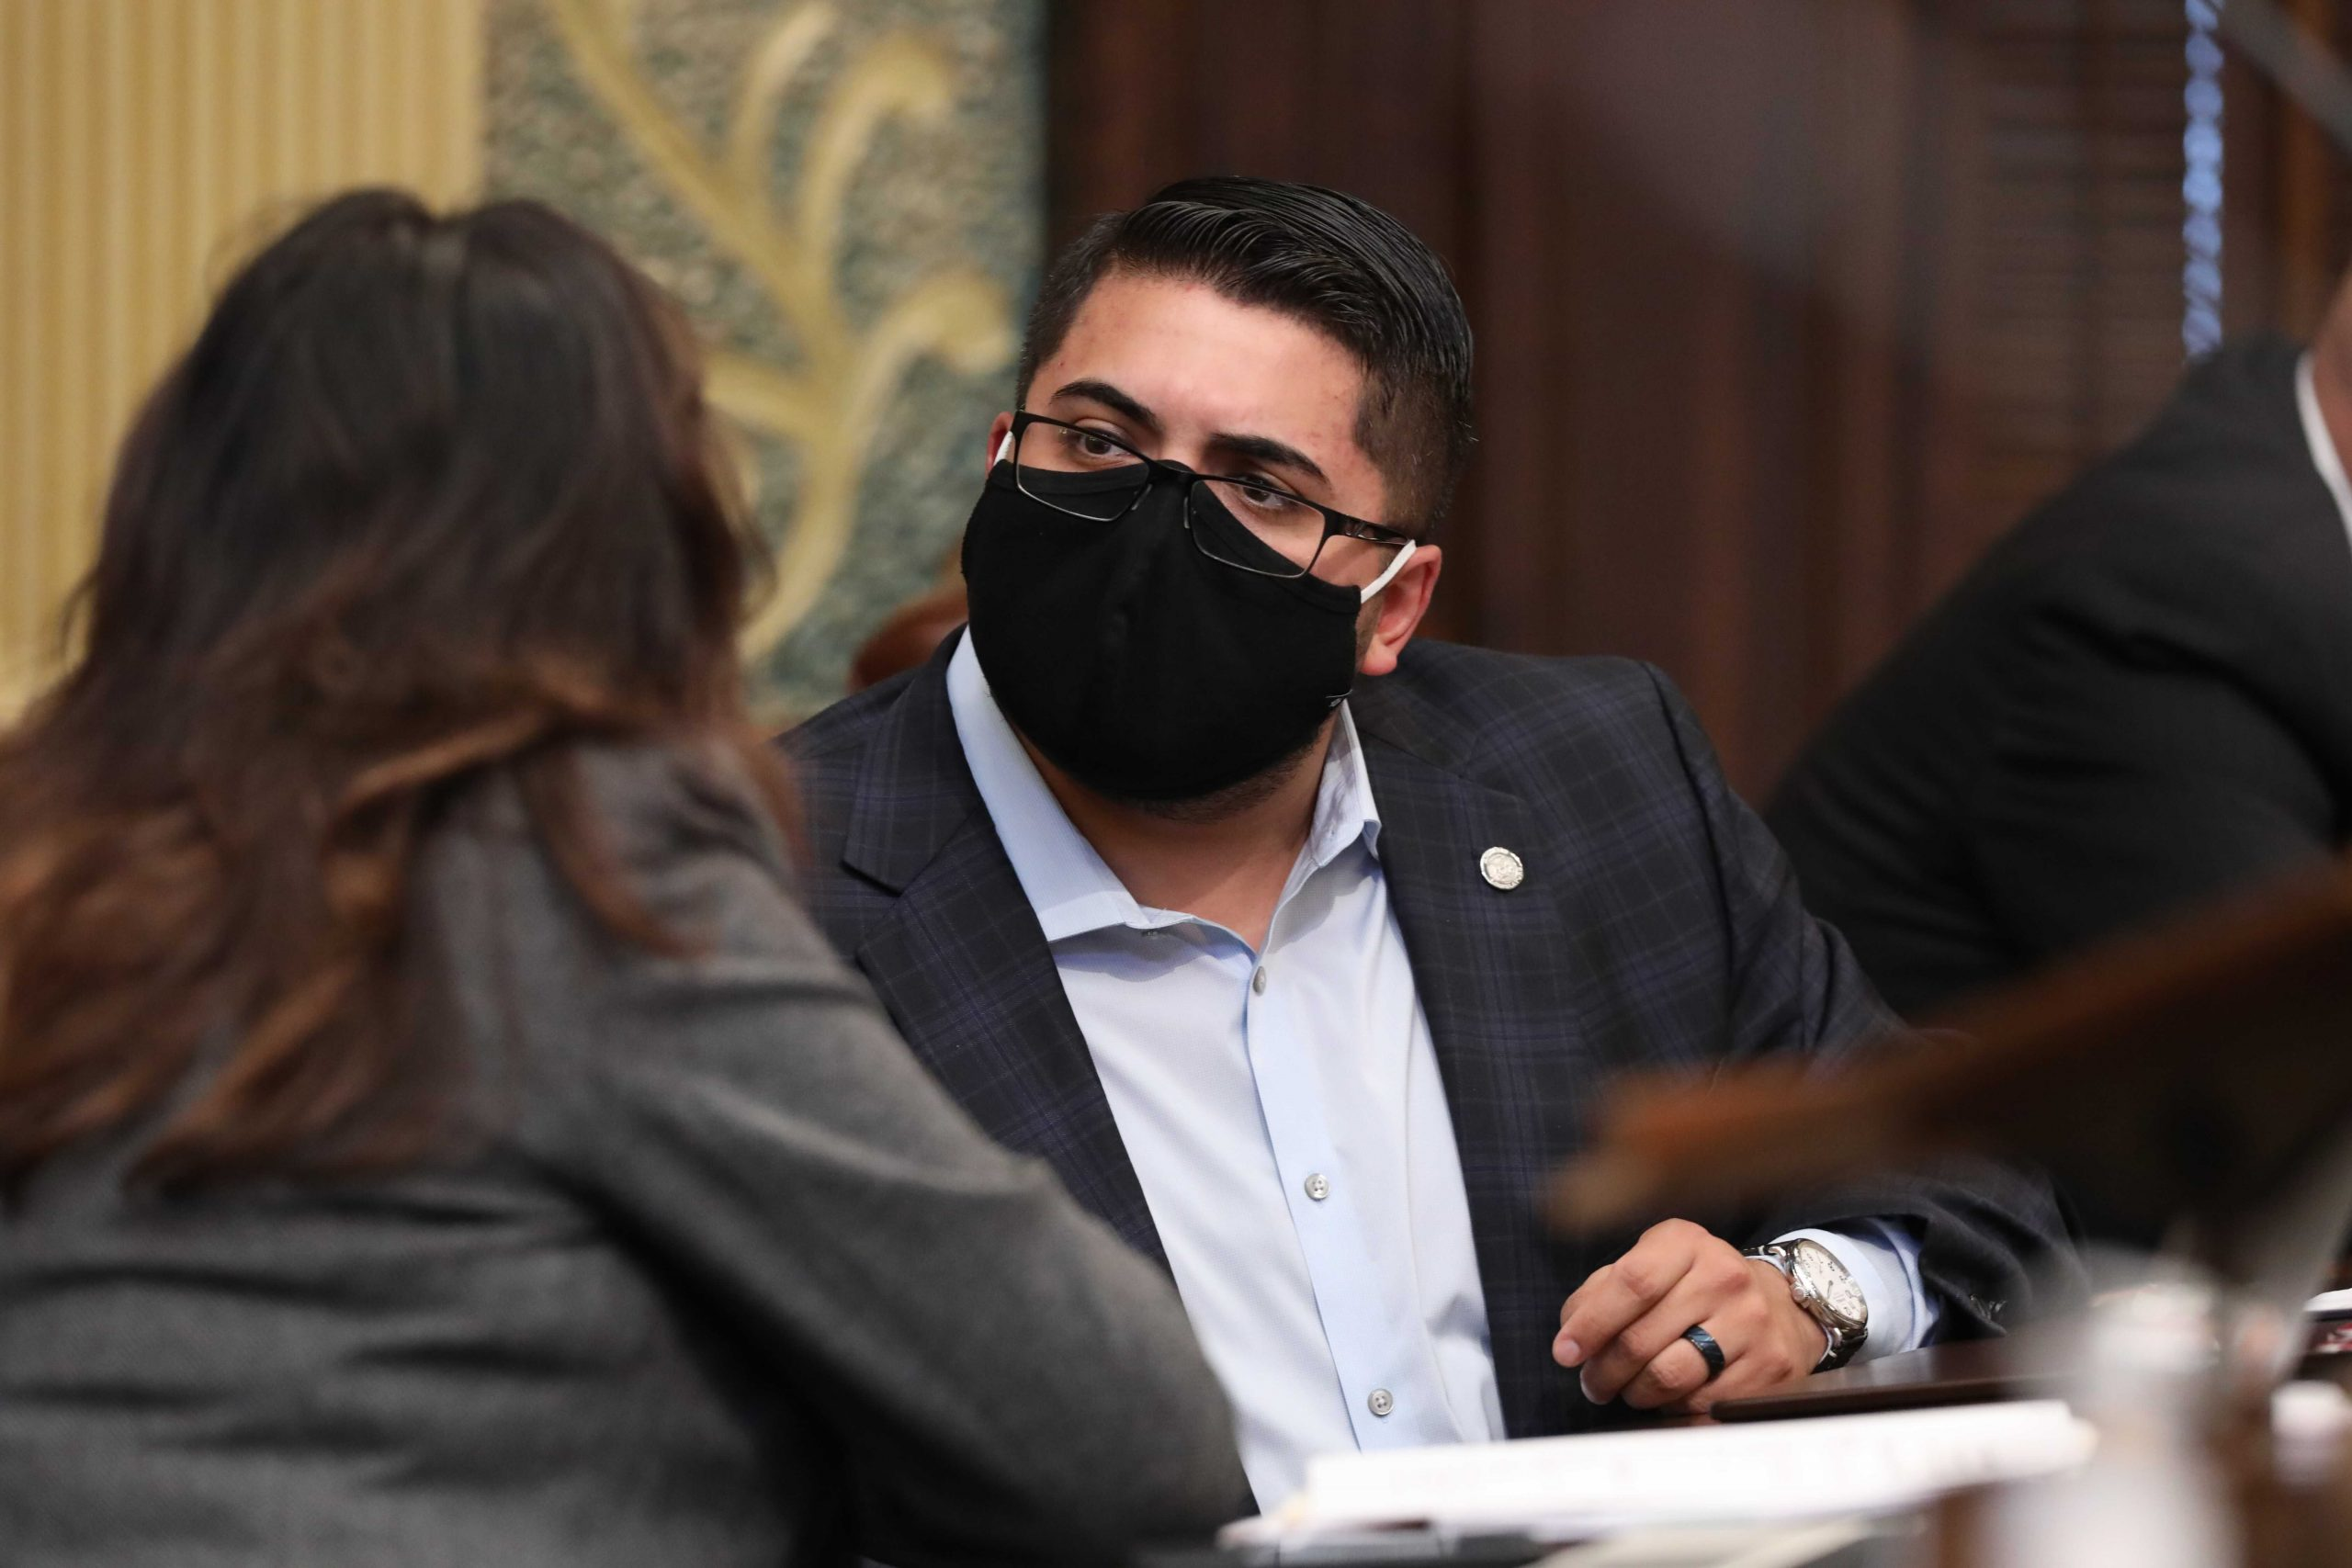 State Rep. Alex Garza (D-Taylor) joining other House Dems in breaking required dress code to protest Republican refusal to require masks on the House floor at the Capitol in Lansing on Oct. 13, 2020.